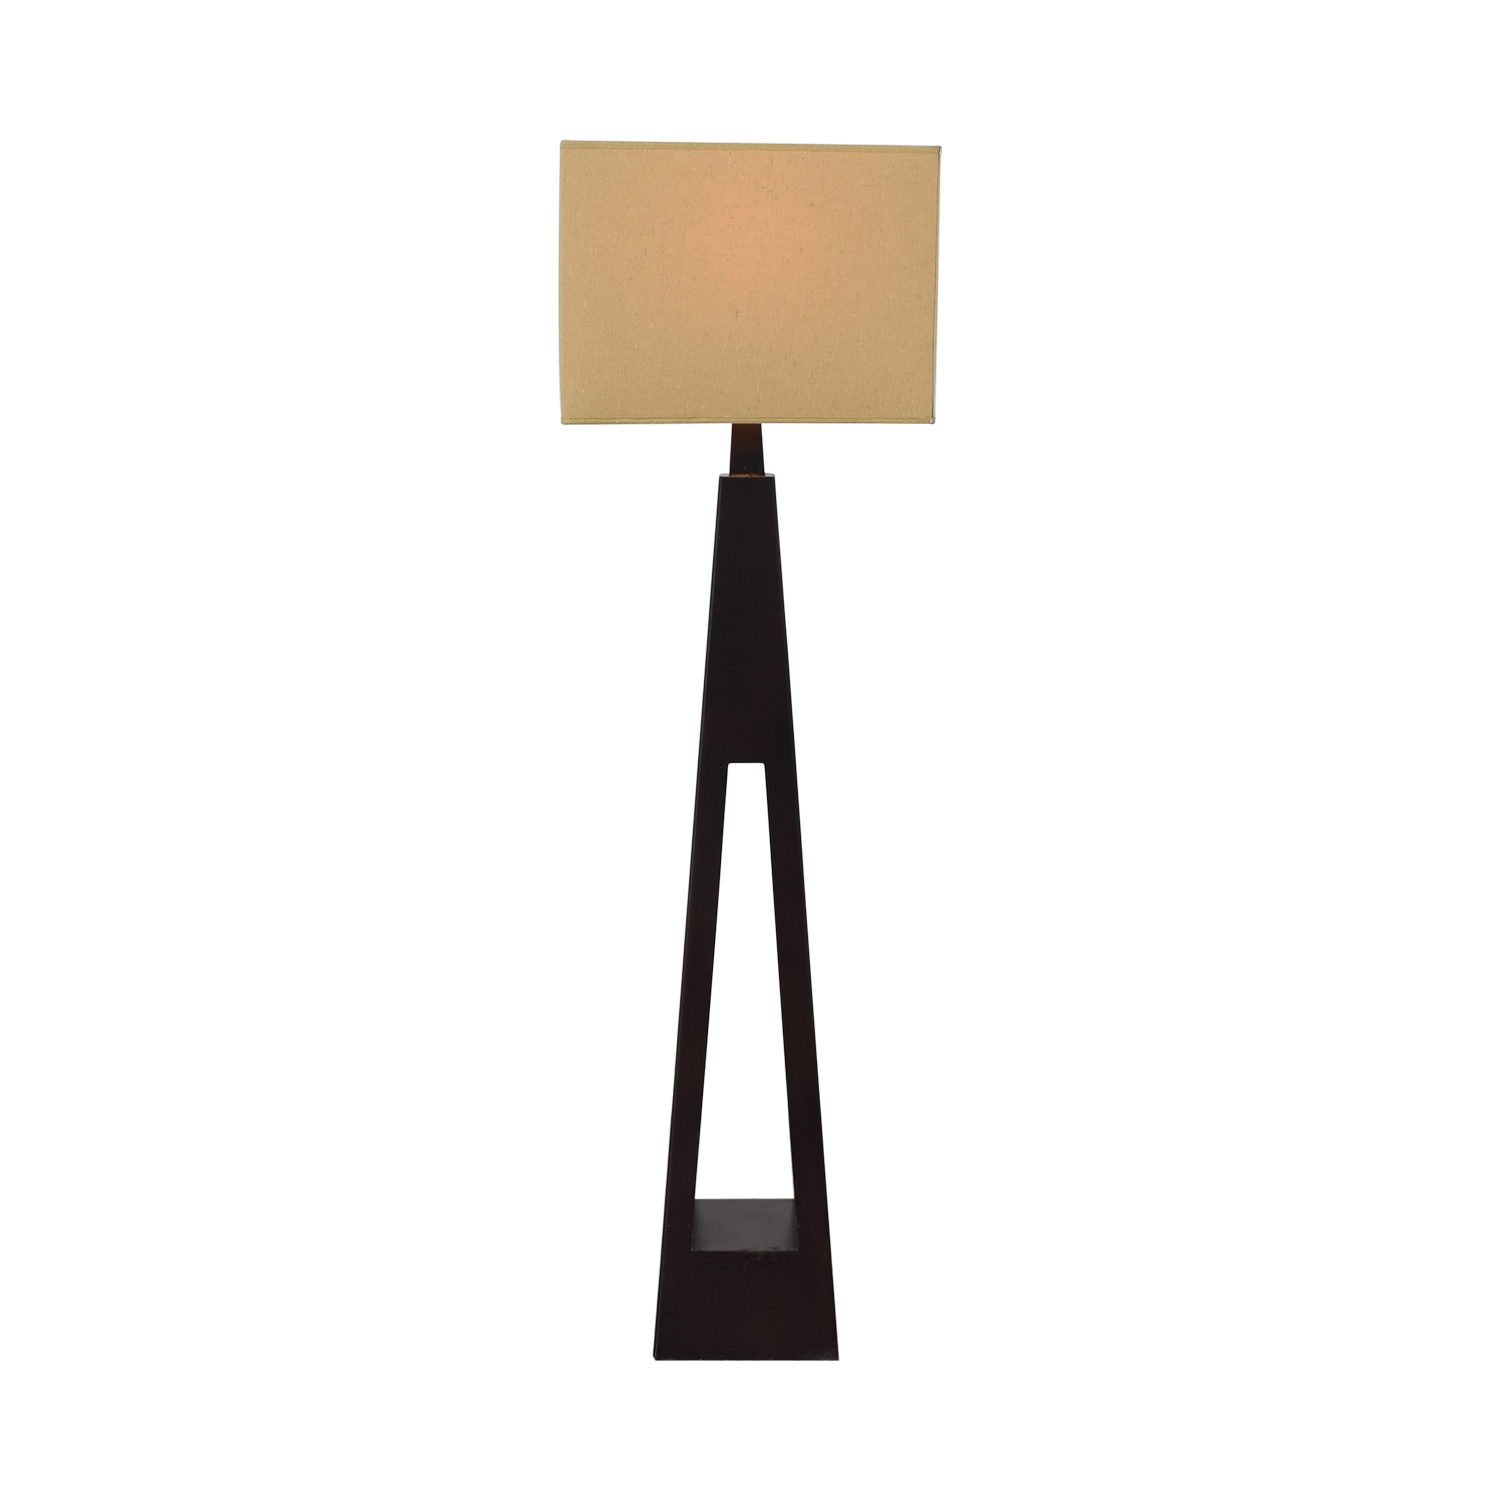 Tarogo Triangular Wood Base Floor Lamp / Decor